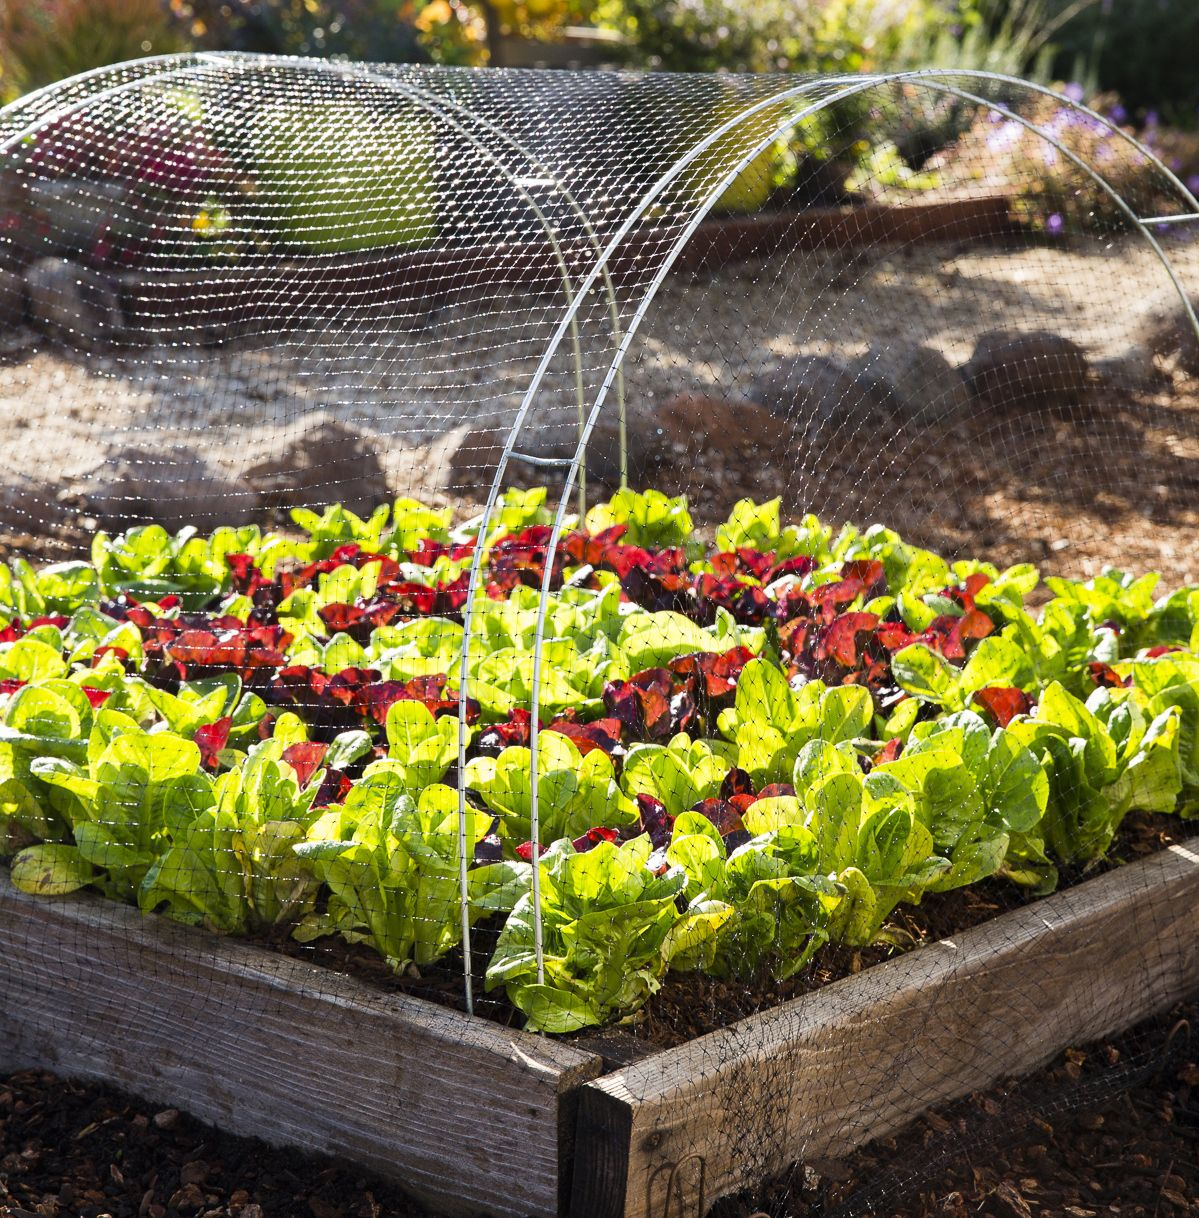 Simple Vegetable Garden Ideas For Your Living: Protect Your Backyard Vegetables From Birds With This $3